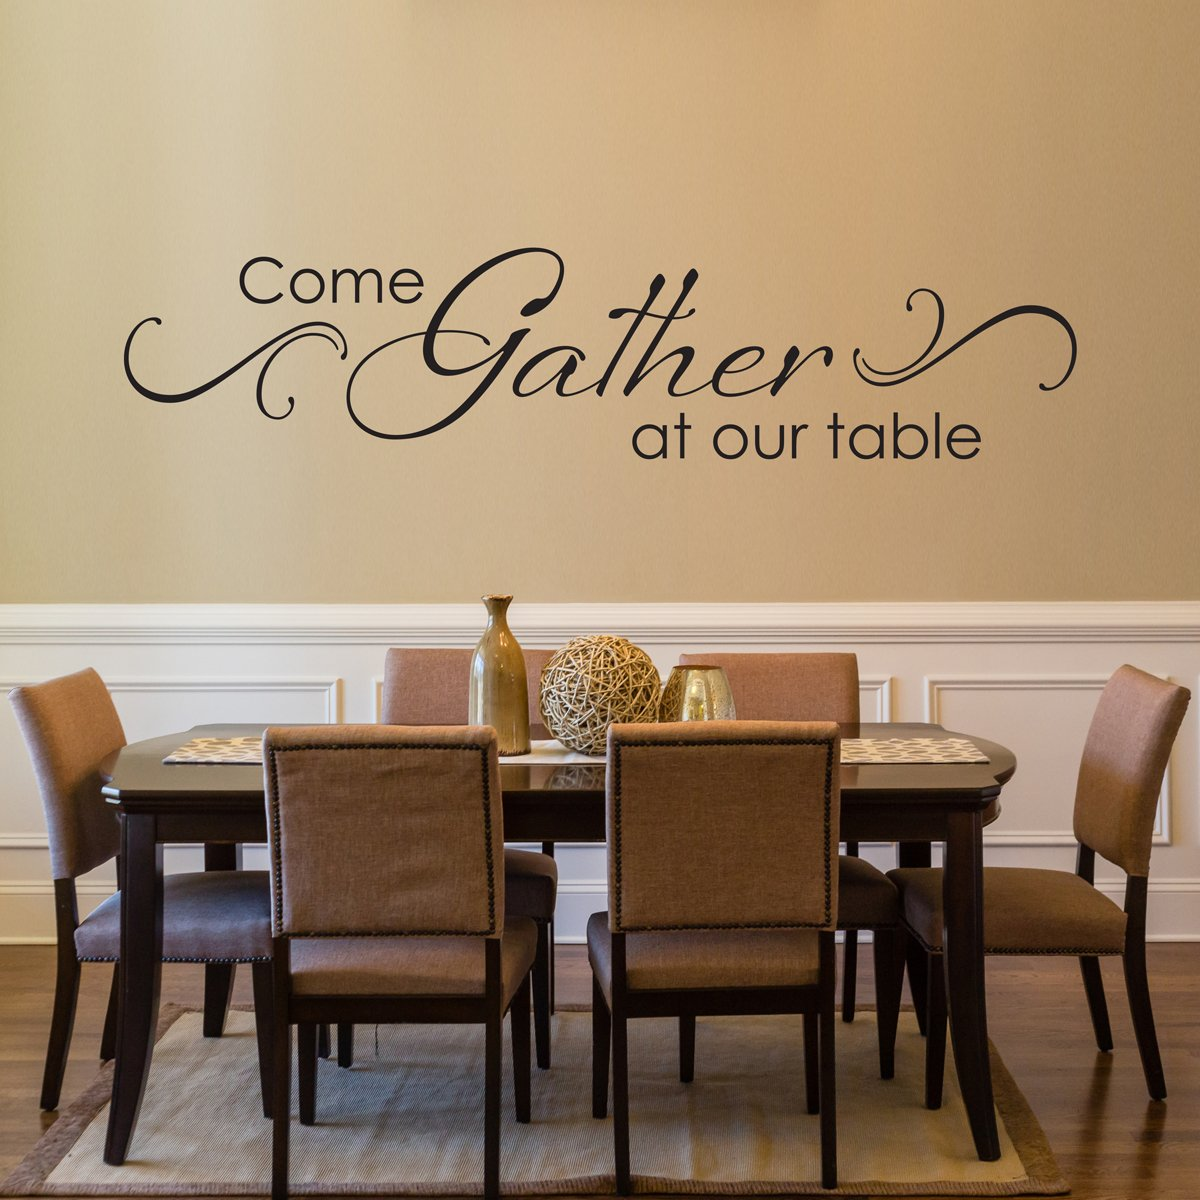 Come Gather at our Table Decal with Scroll design - Dining Room Wall Art - Kitchen Quote Wall Sticker - Dining Room Decor (DE0109)